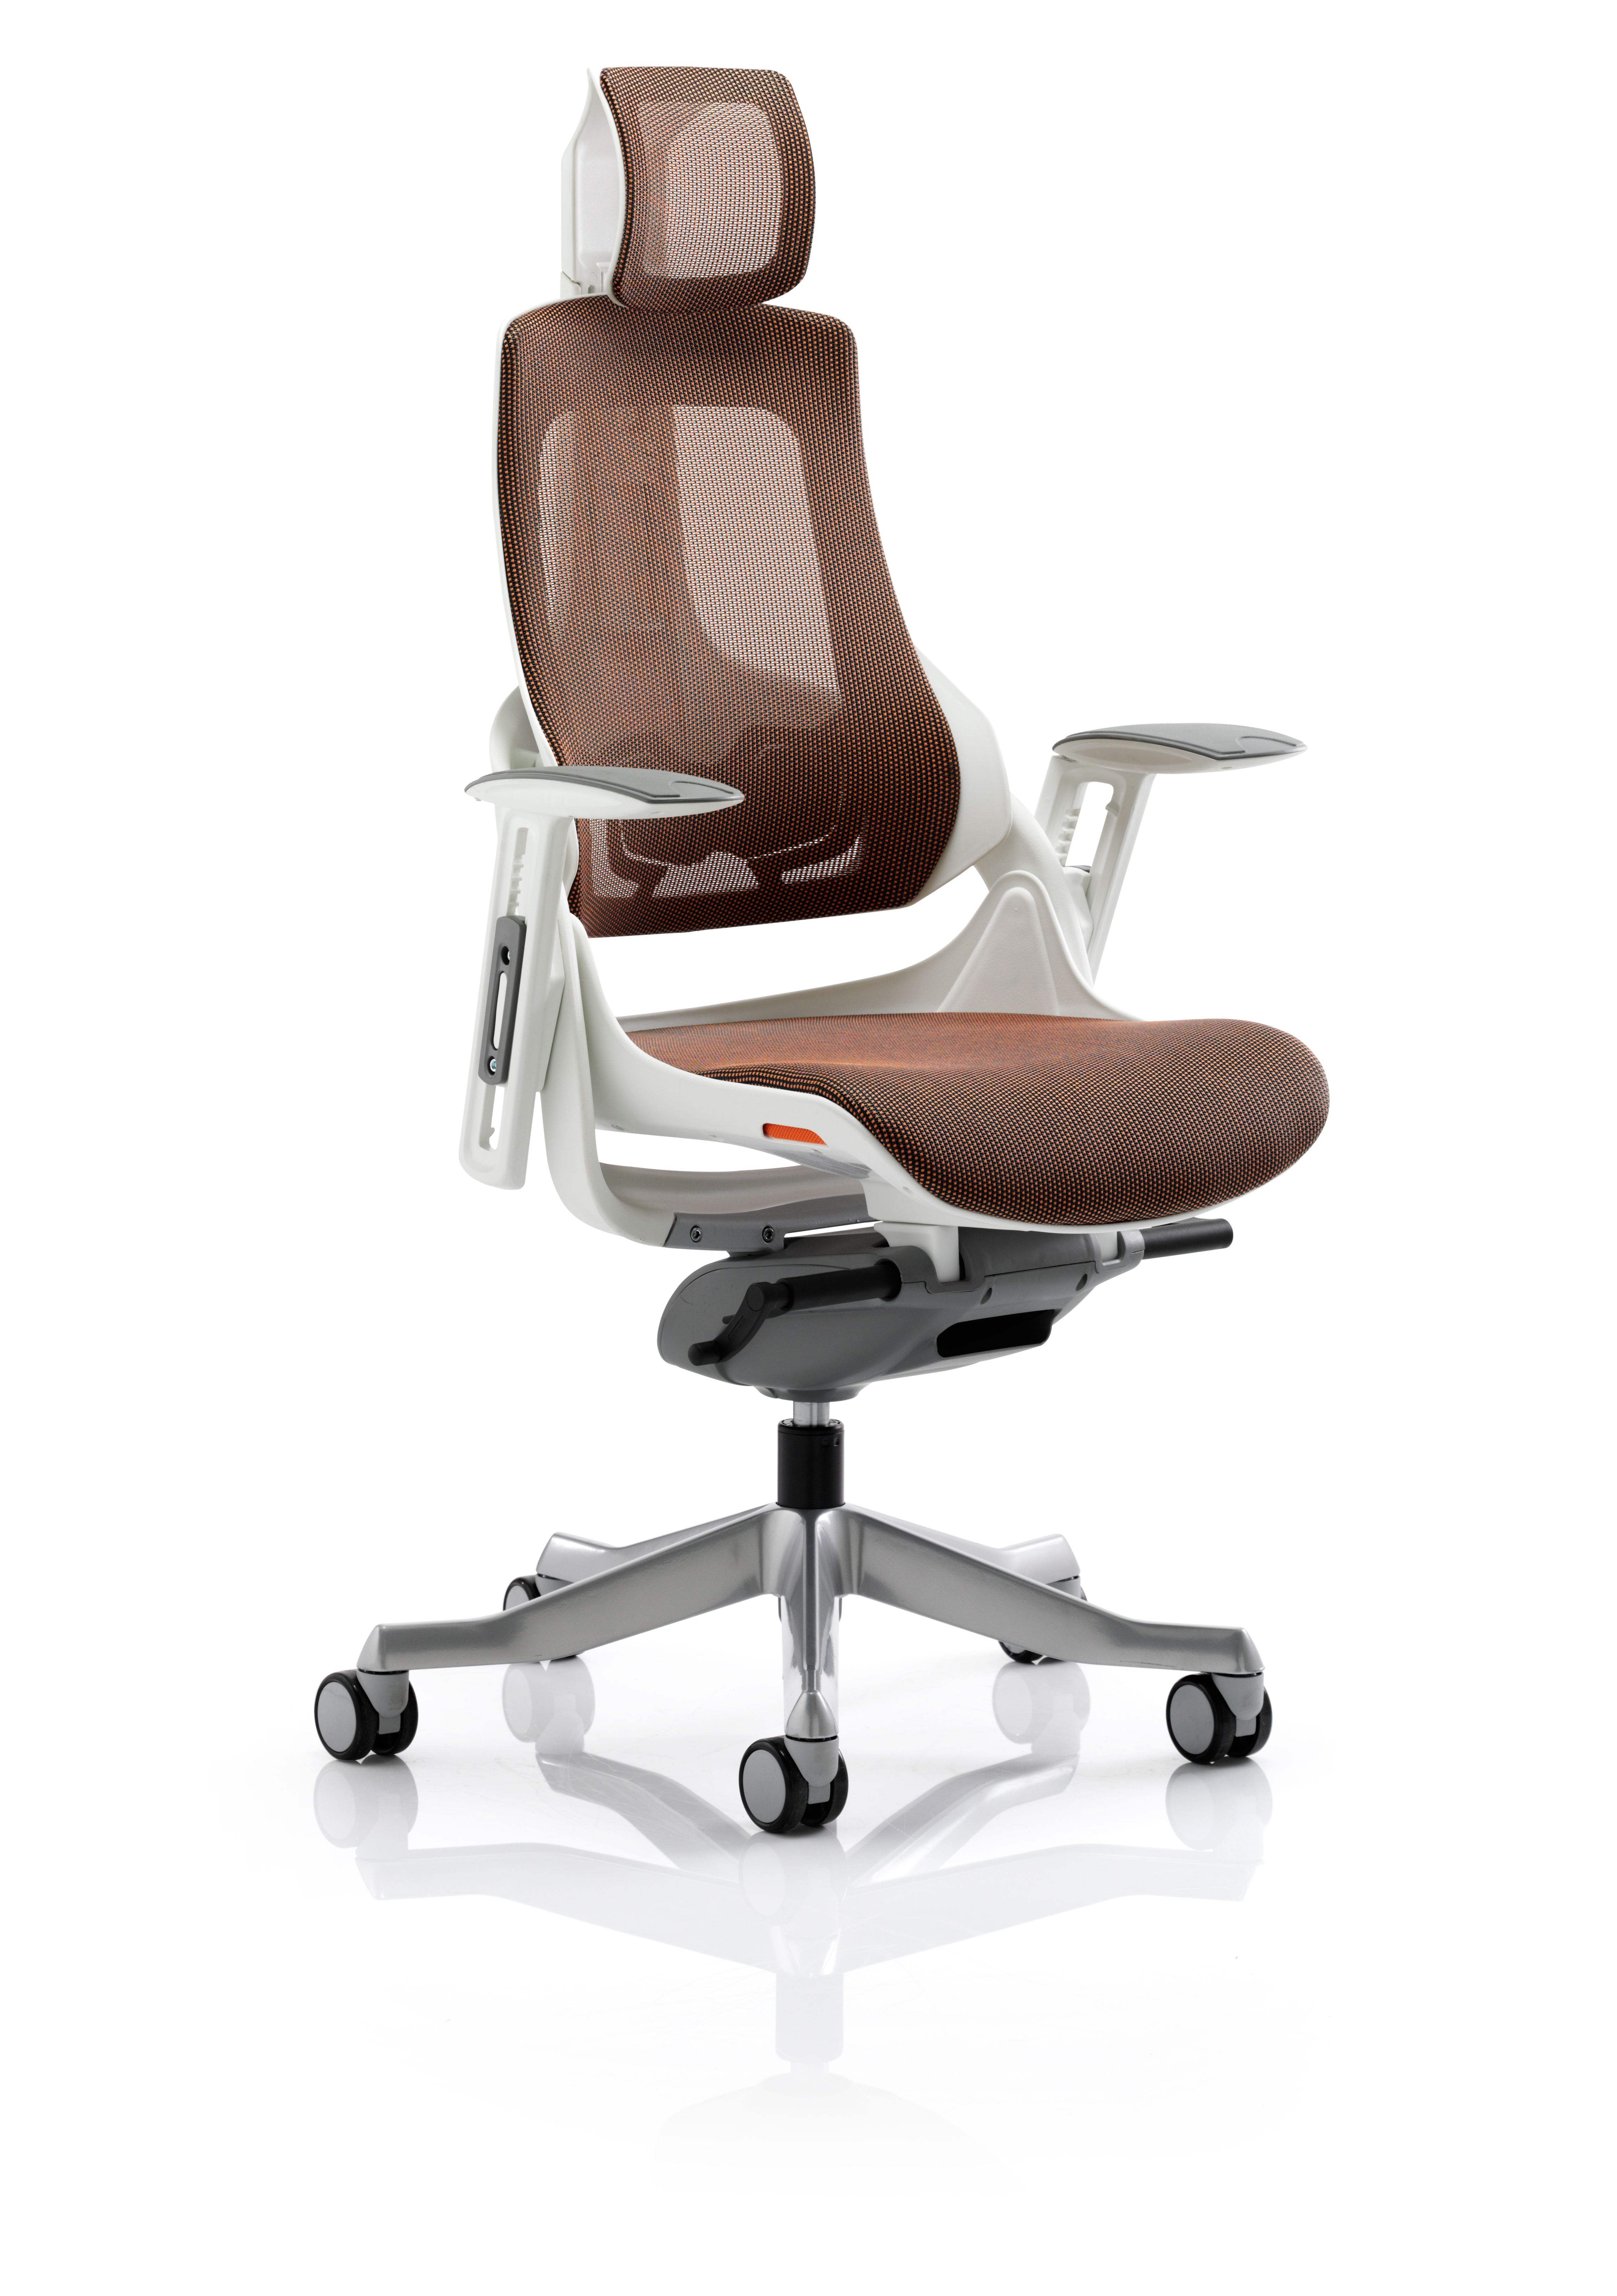 Executive Chairs Zure Mandarin Mesh With Arms With Headrest KC0163